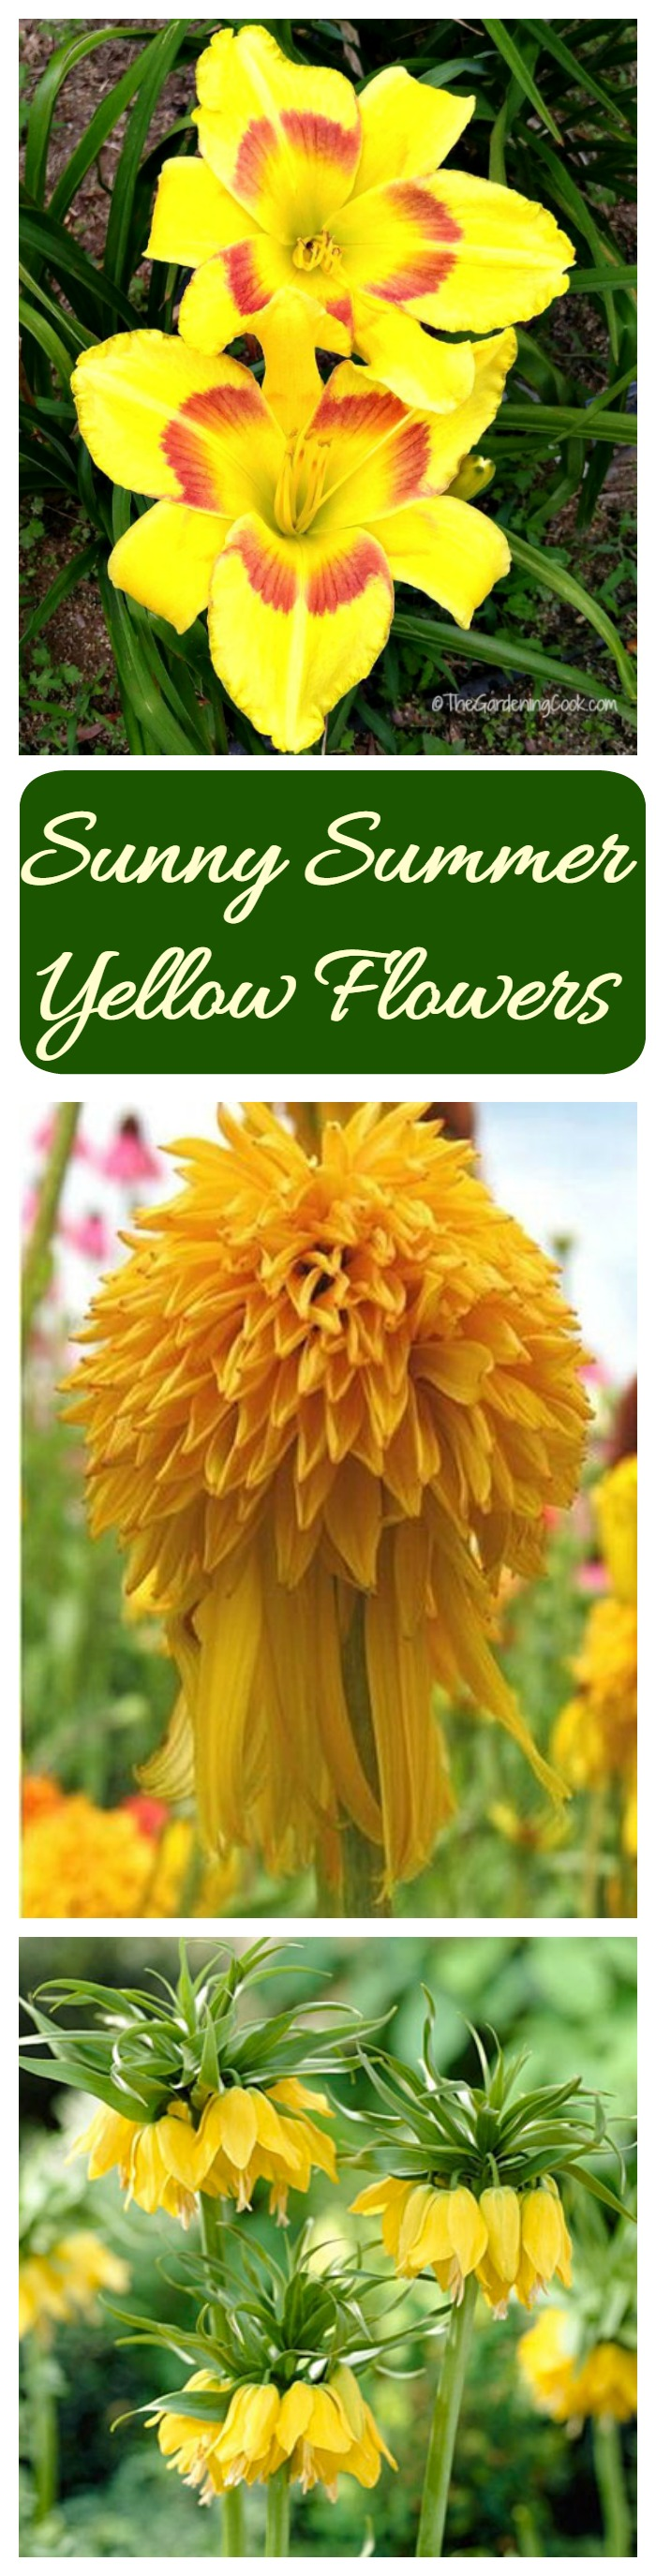 If you are looking for the perfect summer color for your garden, try growing yellow flowers. The color pops in the garden like no other color.